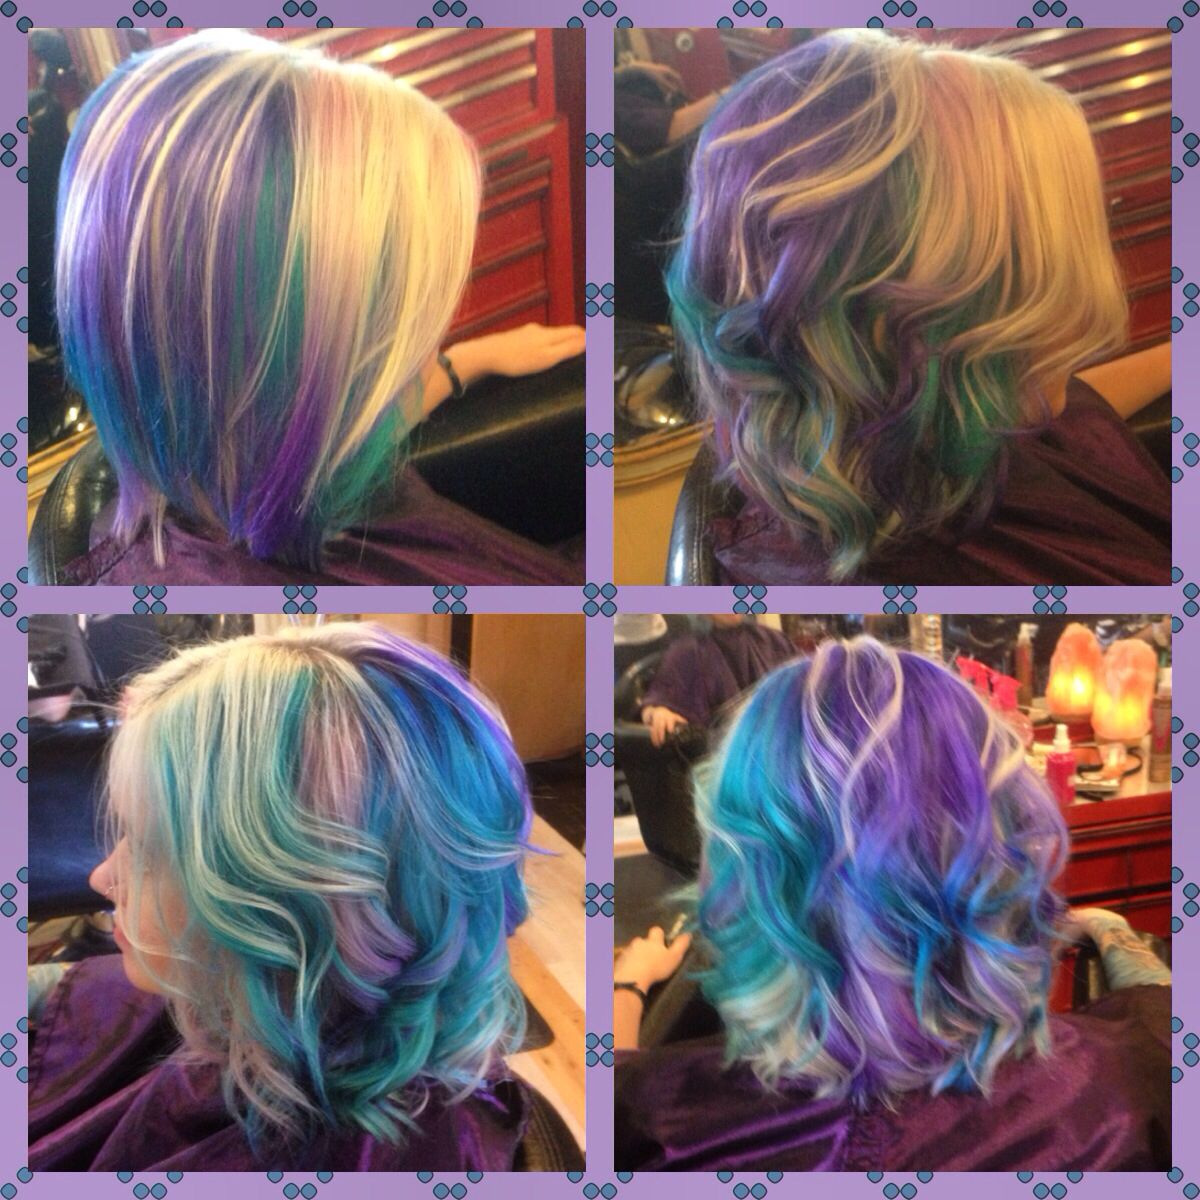 Behind the chair hair color - Pastel Boliage Pink Hair Purple Hair Violet Hair Teal Hair